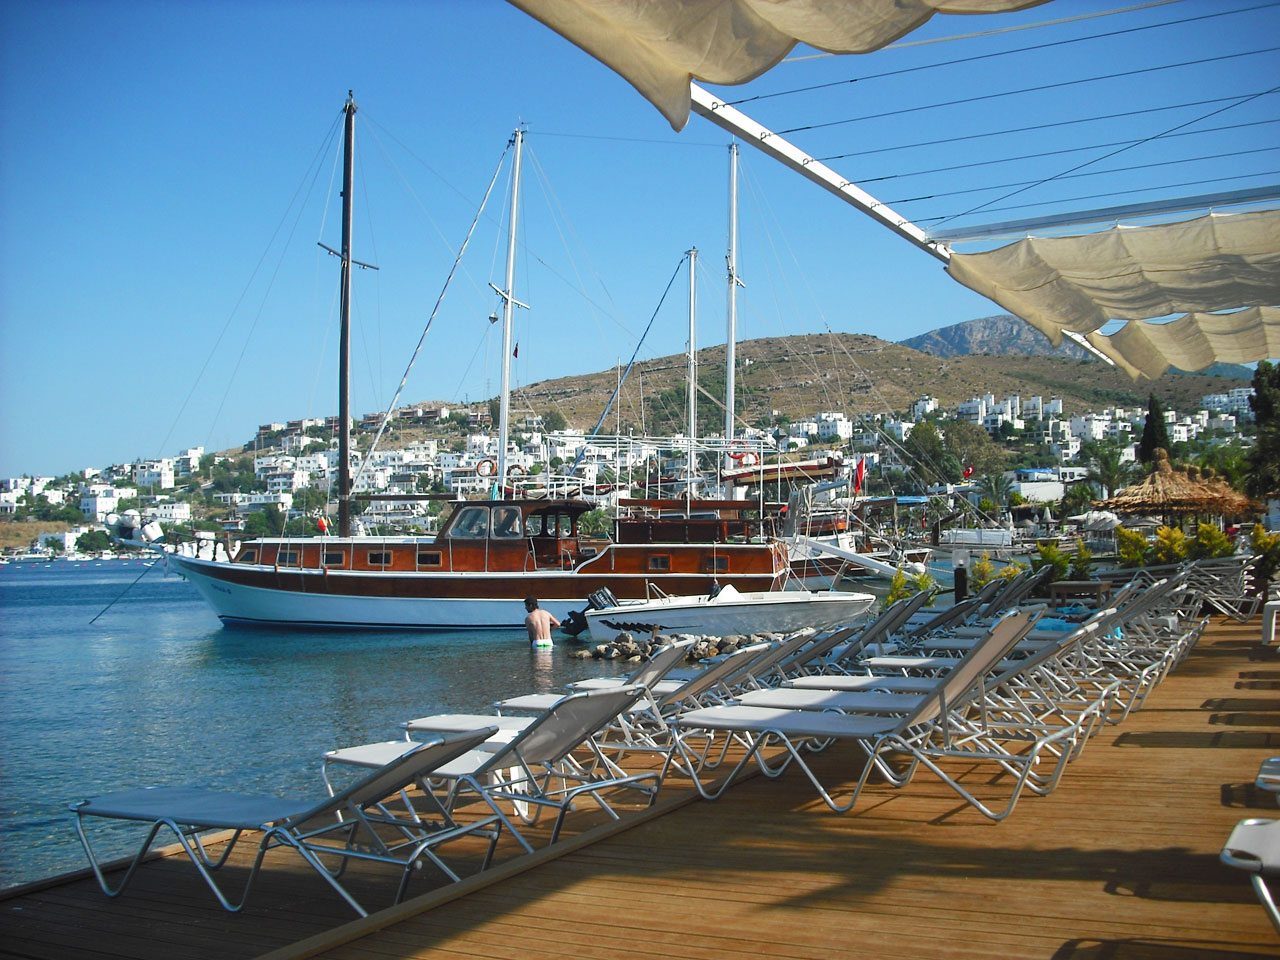 Golturkbuku Beach with its luxury yachts, beach clubs and bars